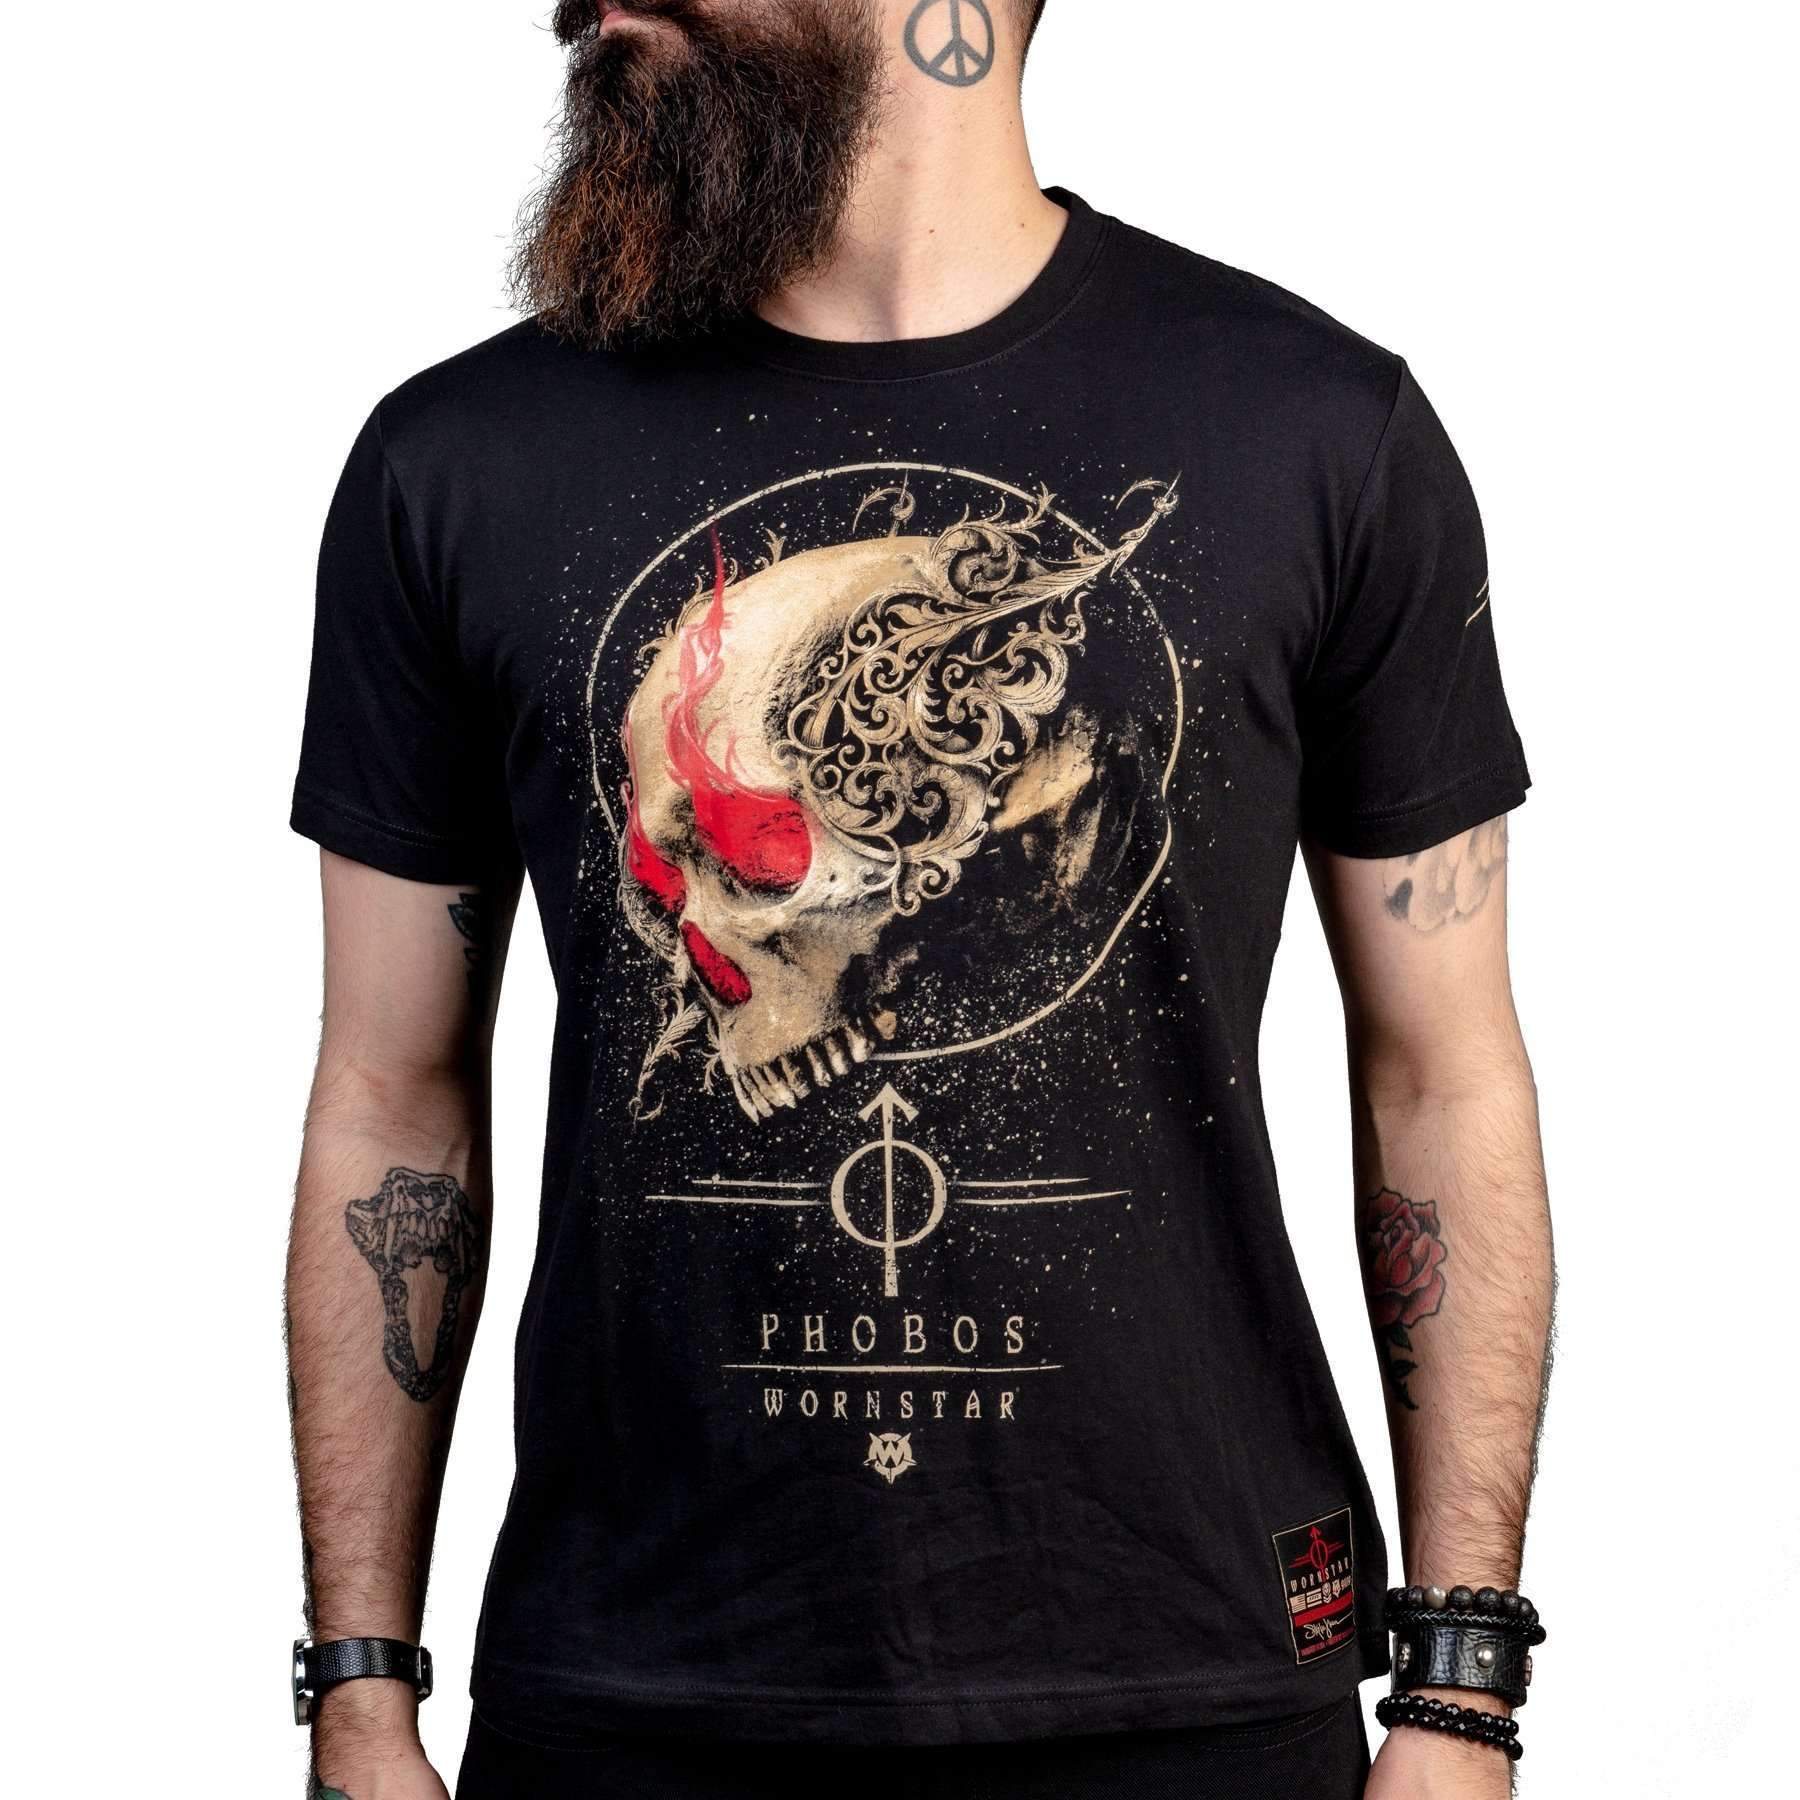 Wornstar Phobos Rock and Roll Tee